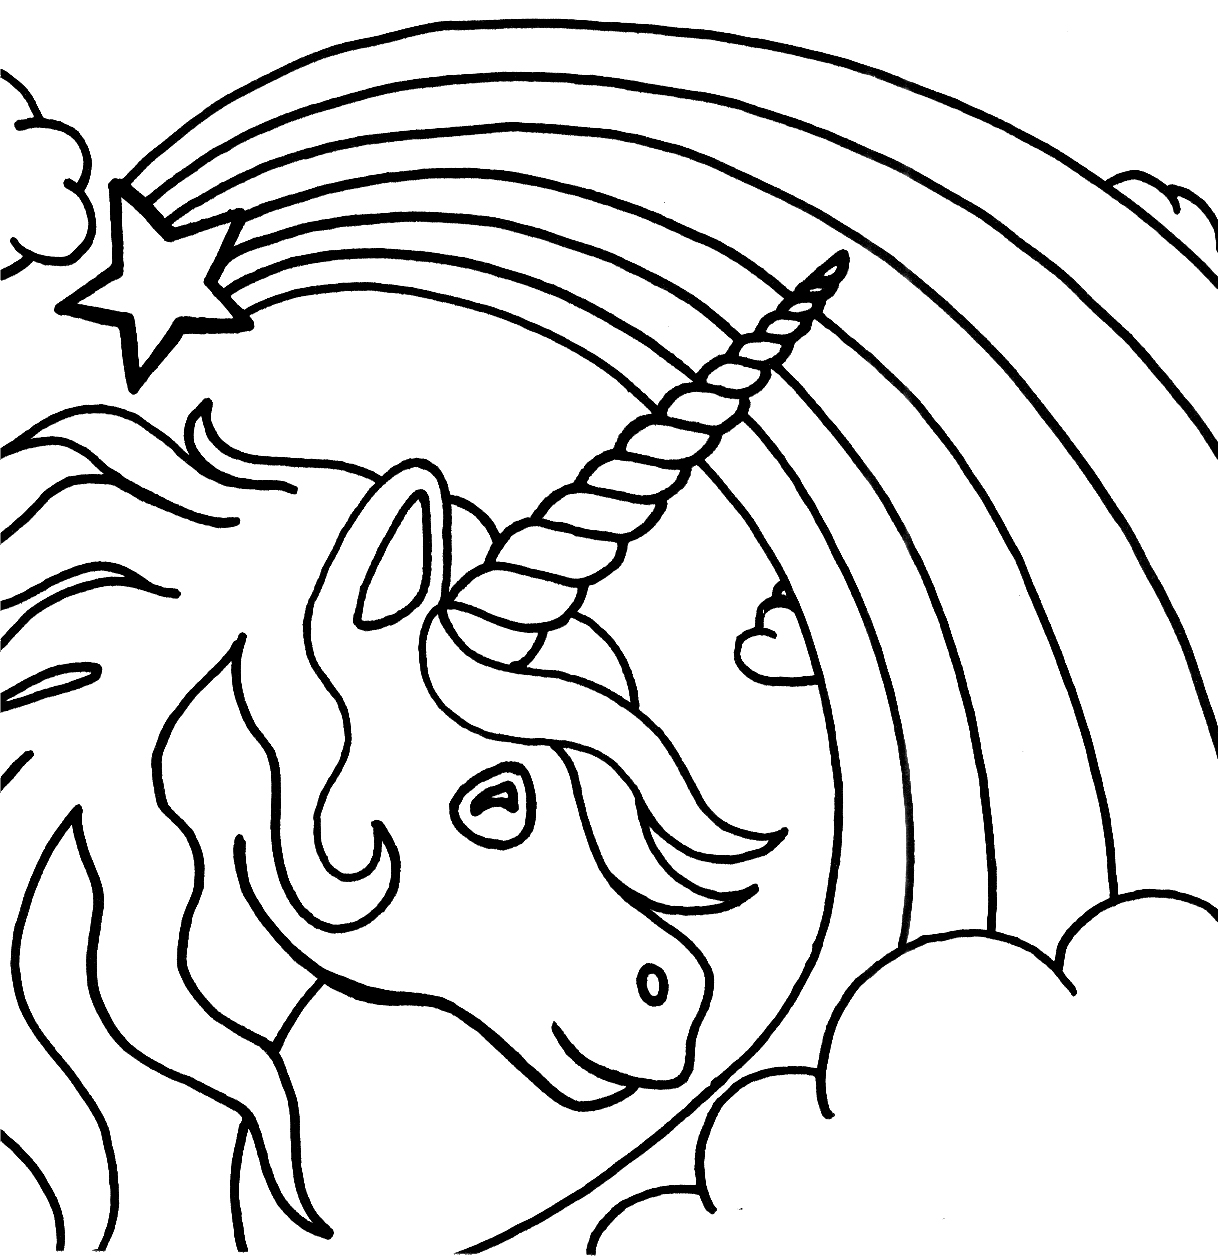 k coloring pages for kids - photo #37